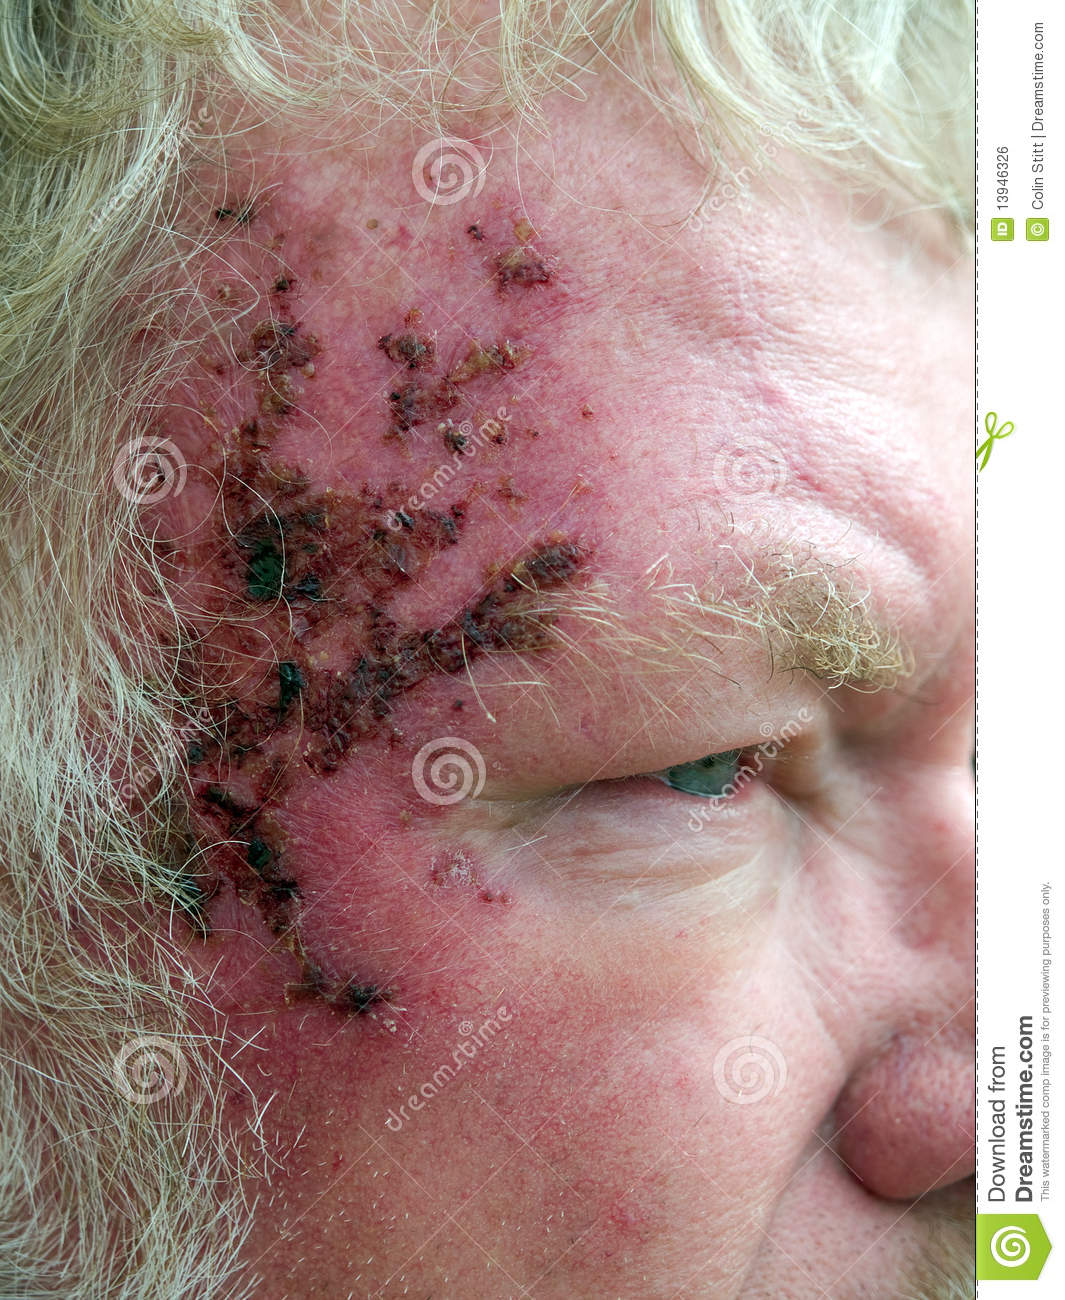 effects of skin cancer Skin cancer is by far the most common type of cancer if you have skin cancer, it is important to know which type you have because it affects your treatment options and your outlook.